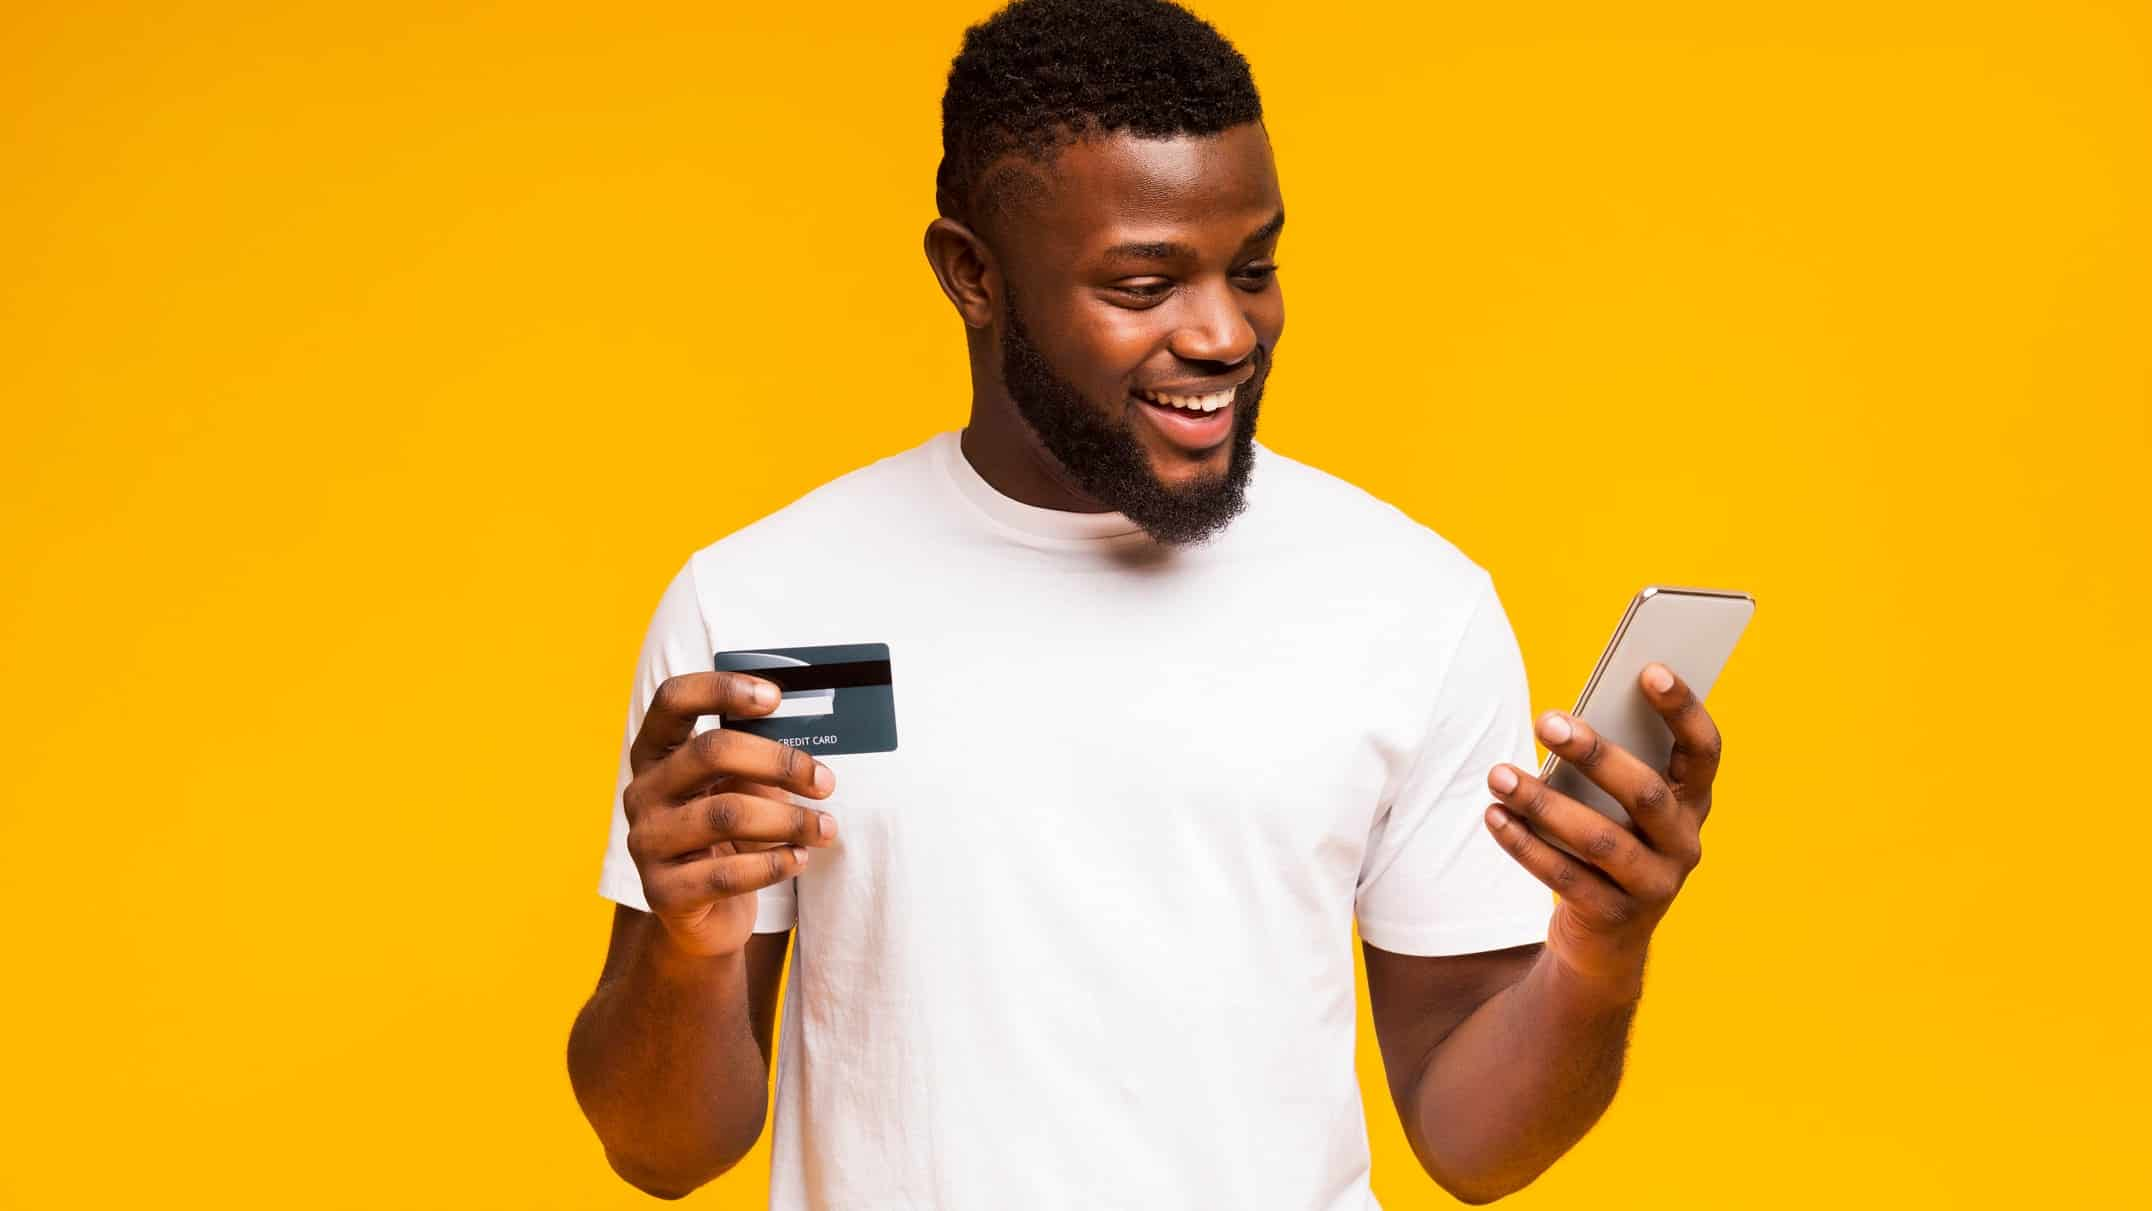 Man in white t-shirt holding Visa card and mobile in front of yellow background